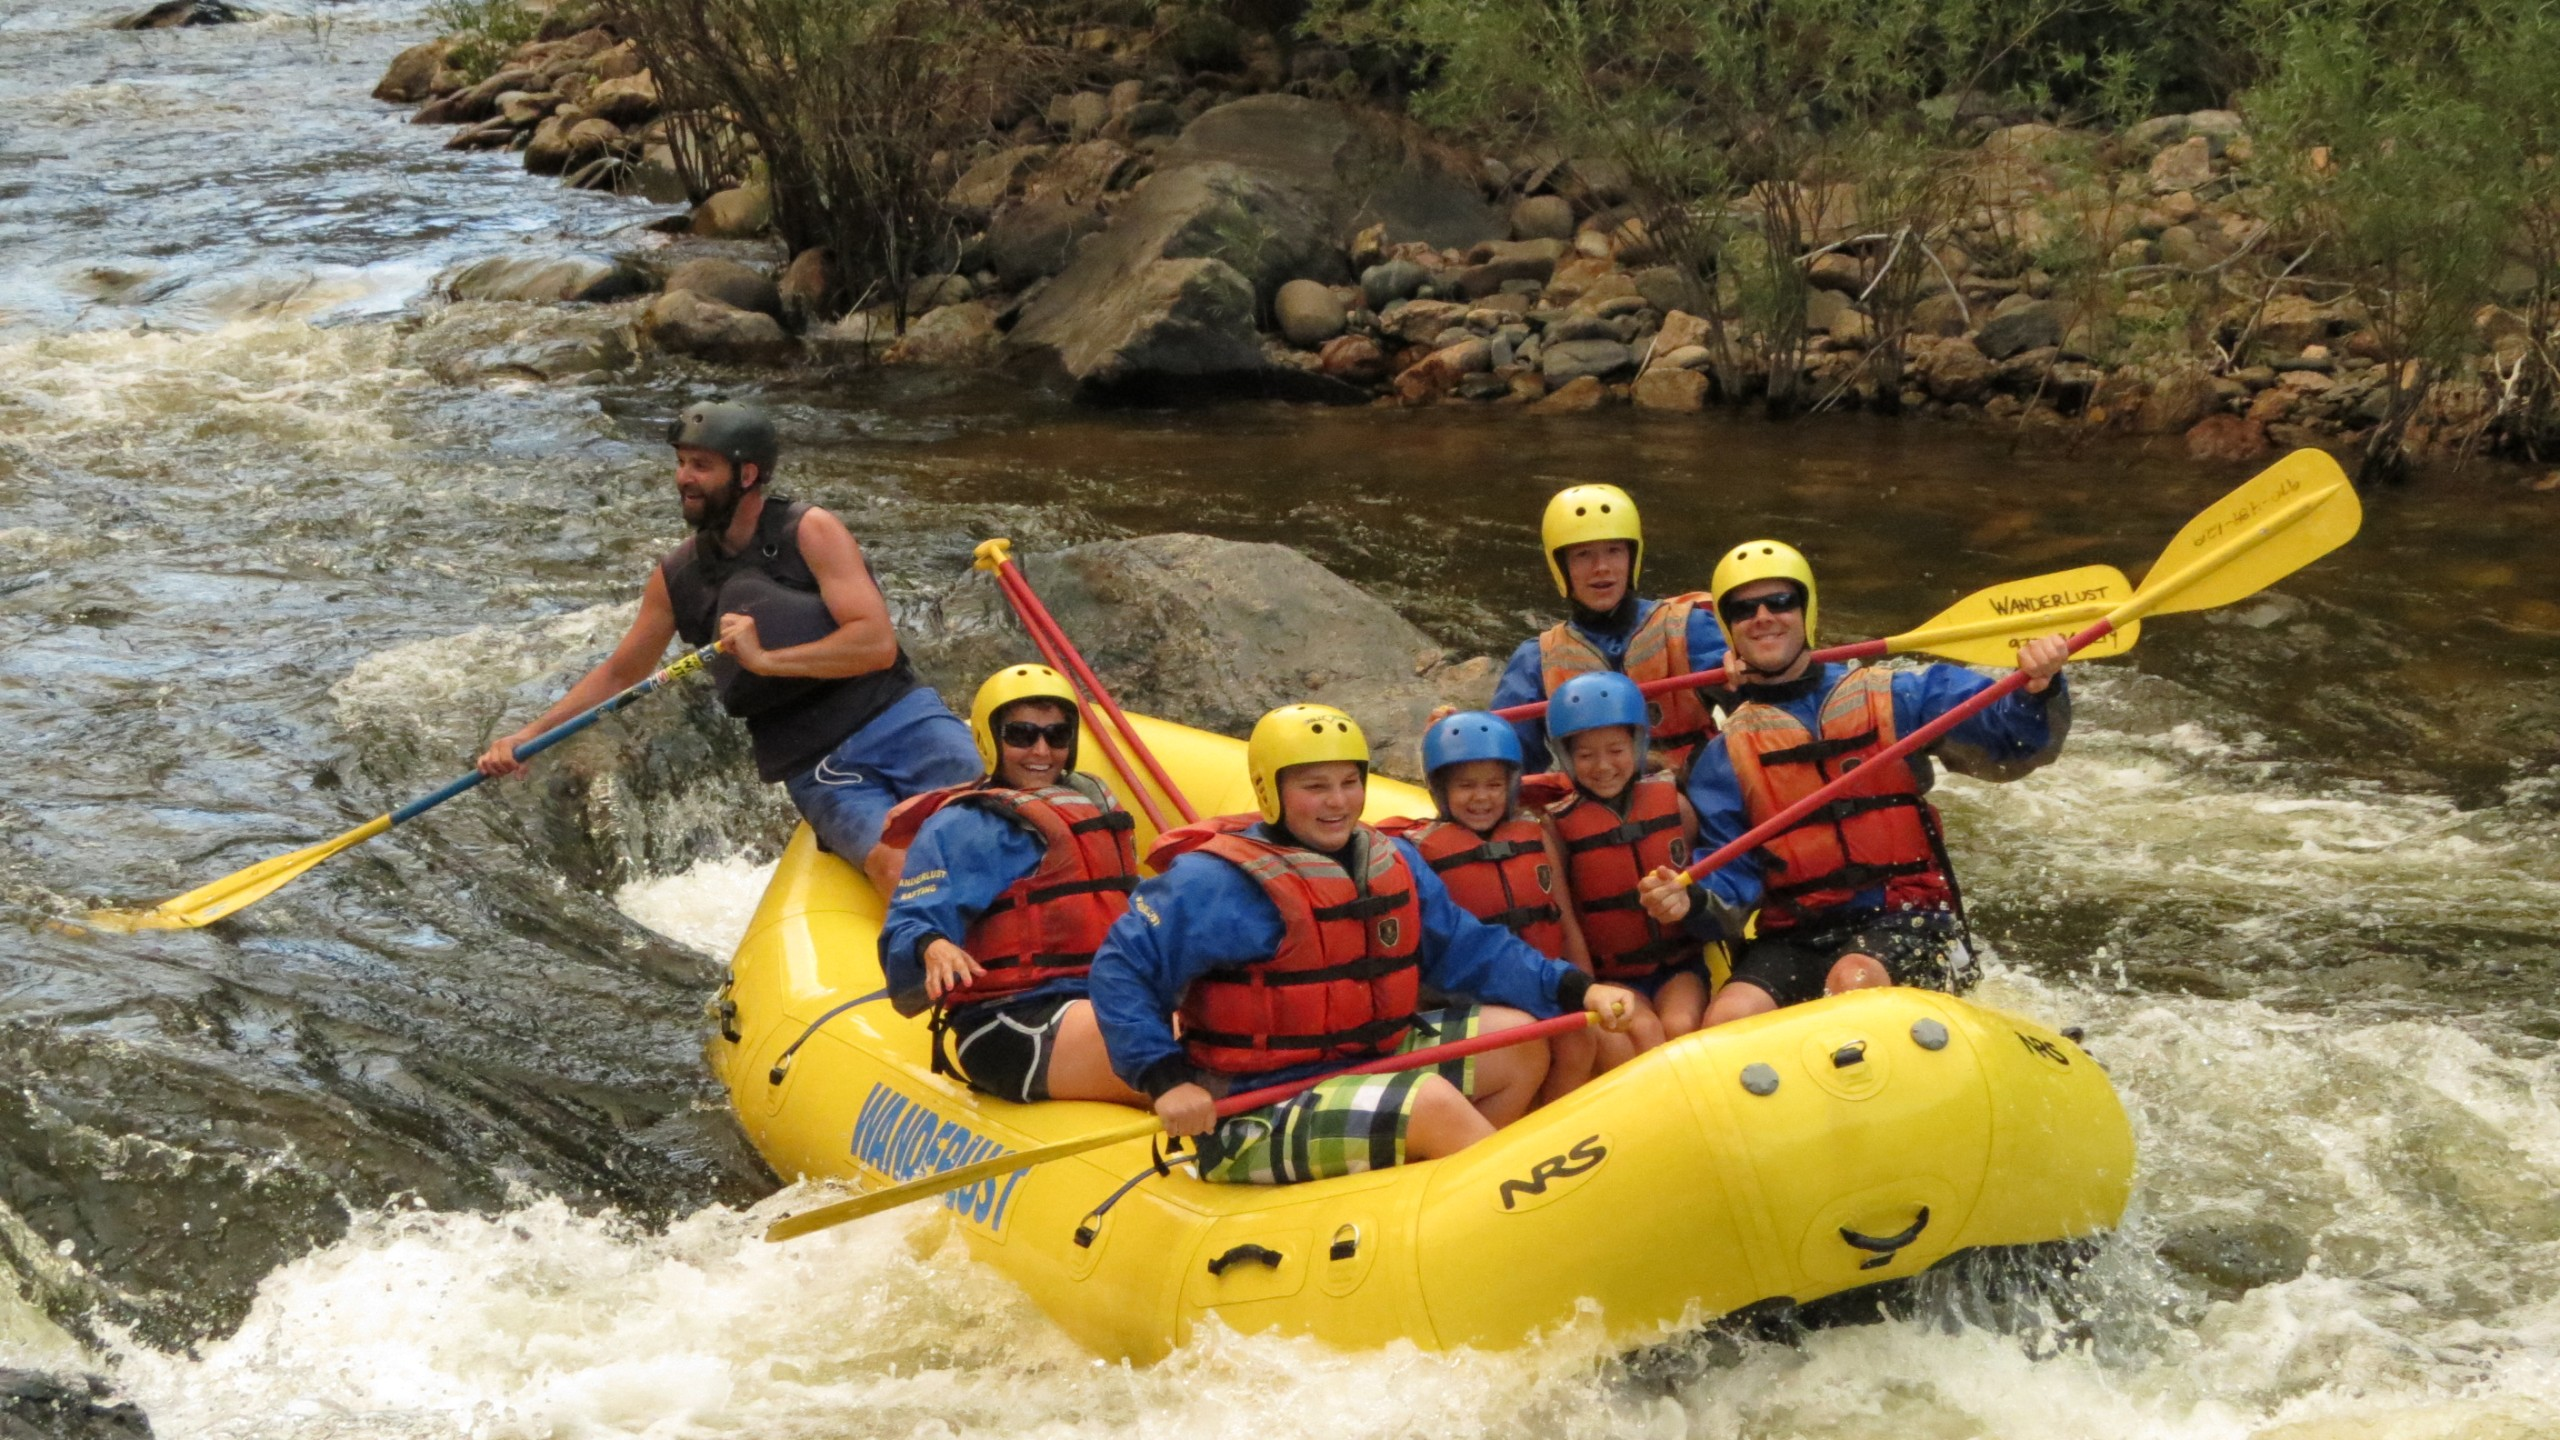 Water rafting the Poudre River just outside Fort Collins, CO - Amy Urbach